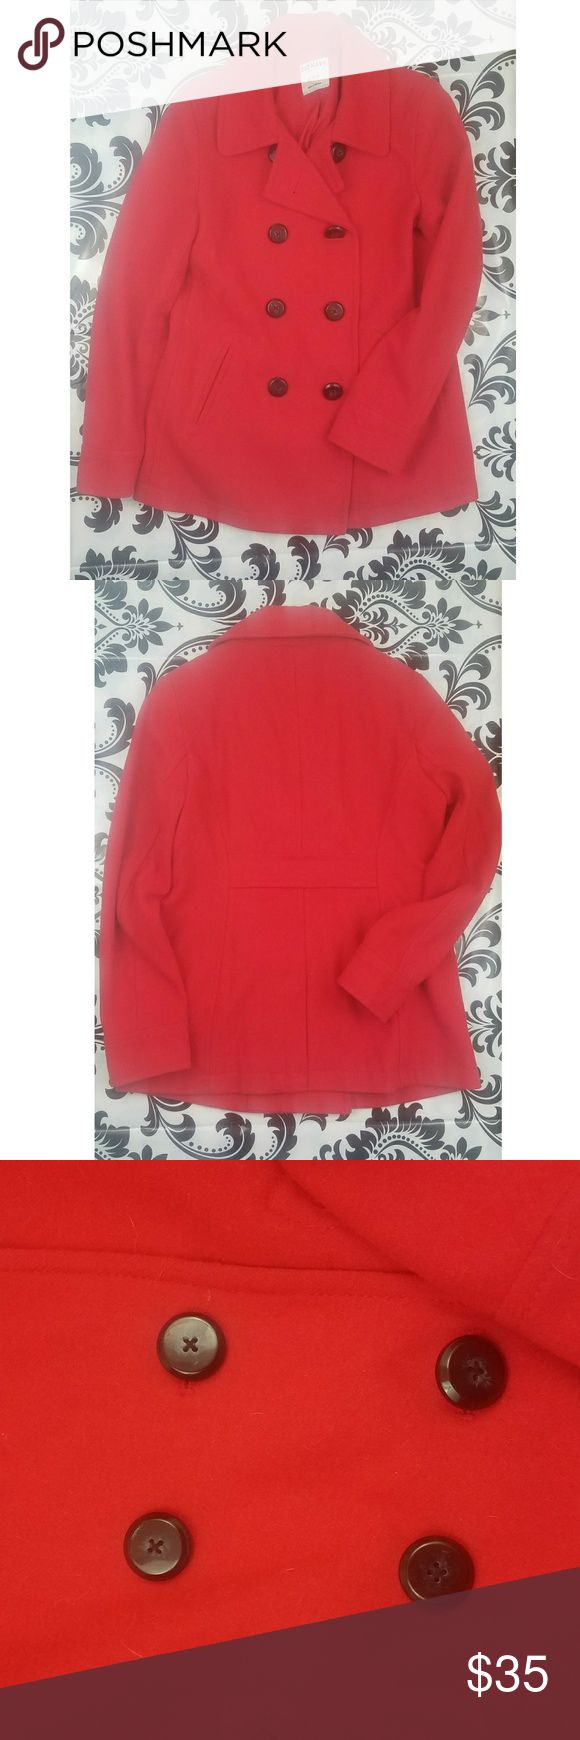 Old navy pea coat Women's old navy pea coat True red color Pre Owned  good condition  Has been worn  Women's Size xsmall Old Navy Jackets & Coats Pea Coats